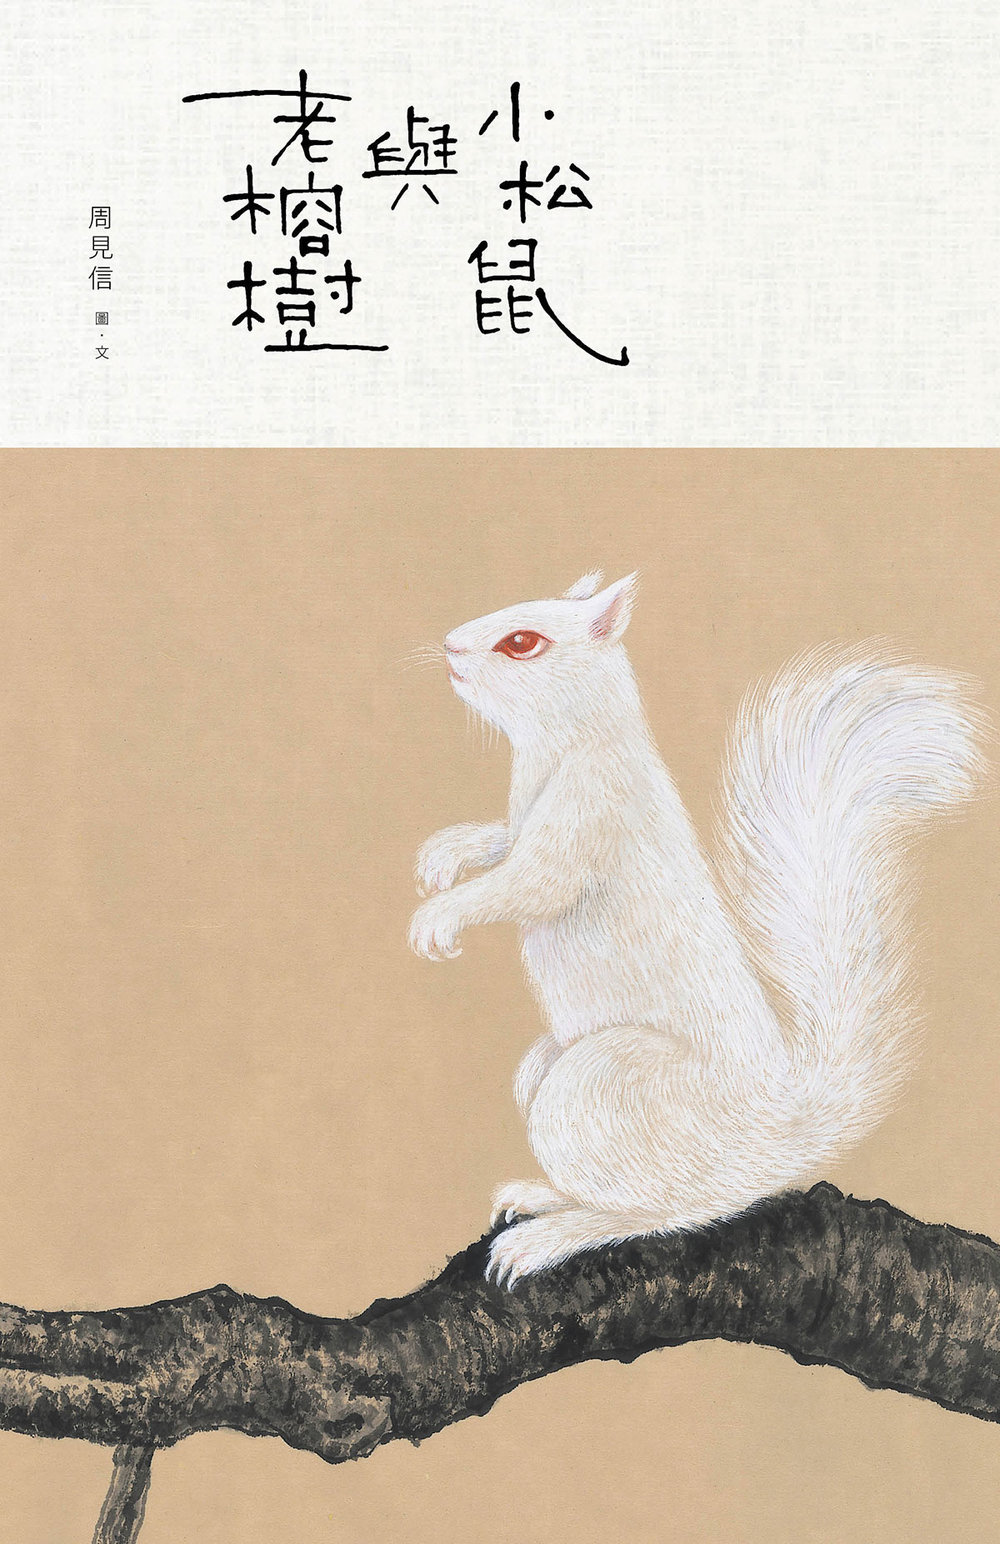 Sharp Point Press|尖端出版   56pages|19 × 29cm|978-957-106-515-1   CONTACT INFO:   Carol Huang Rights Specialist| carol_huang@mail2.spp.com.tw   Tel:+886-2-2500-7600 ext.1023